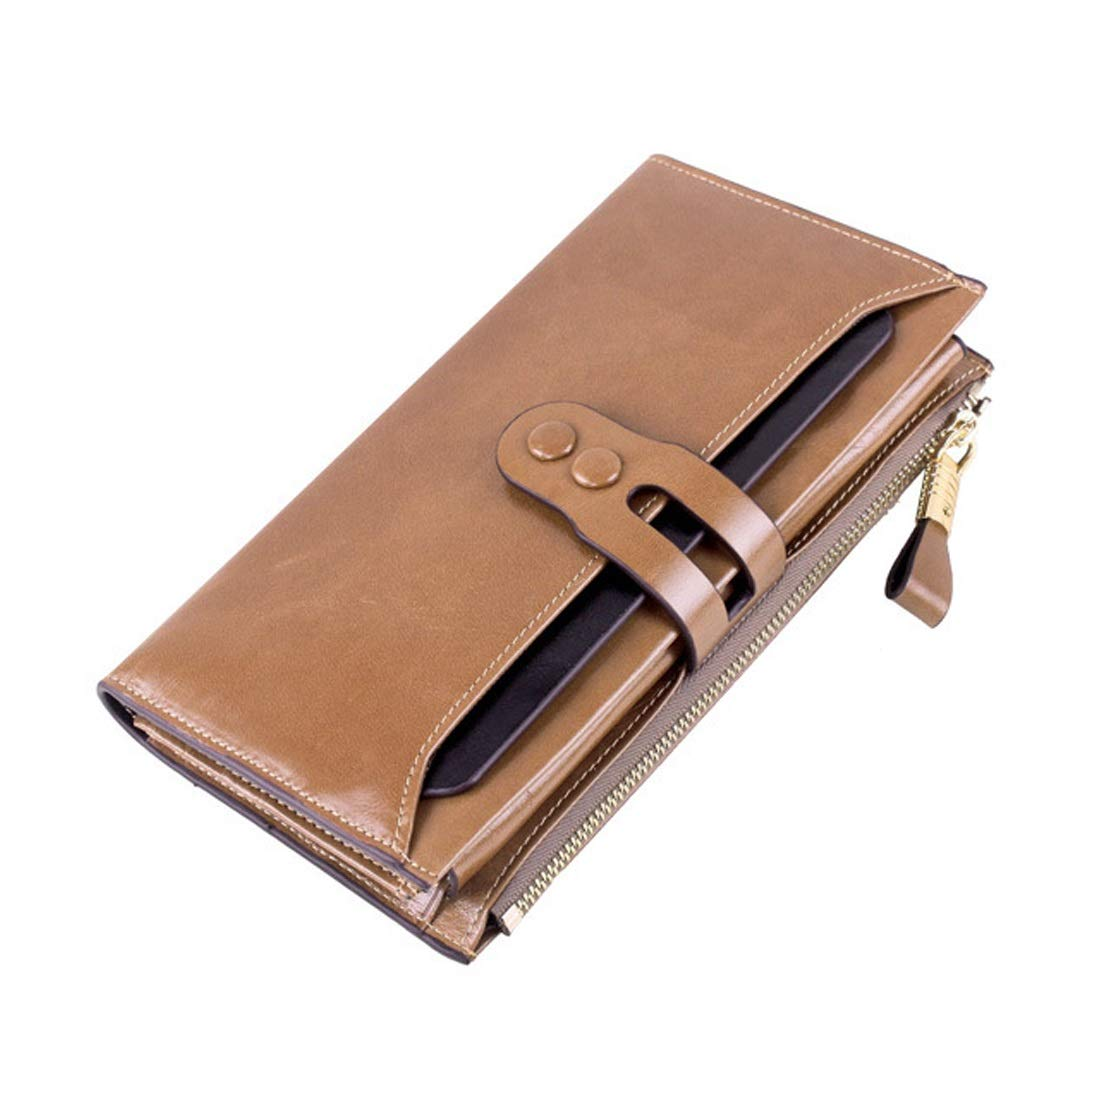 Professional Bag Long Wallet Unisex Zipper Wallet Fashion Large Capacity Folding Wallet Leather Cowhide Multicolor Available Select. Outdoor Travel Essentials (color   Beige)